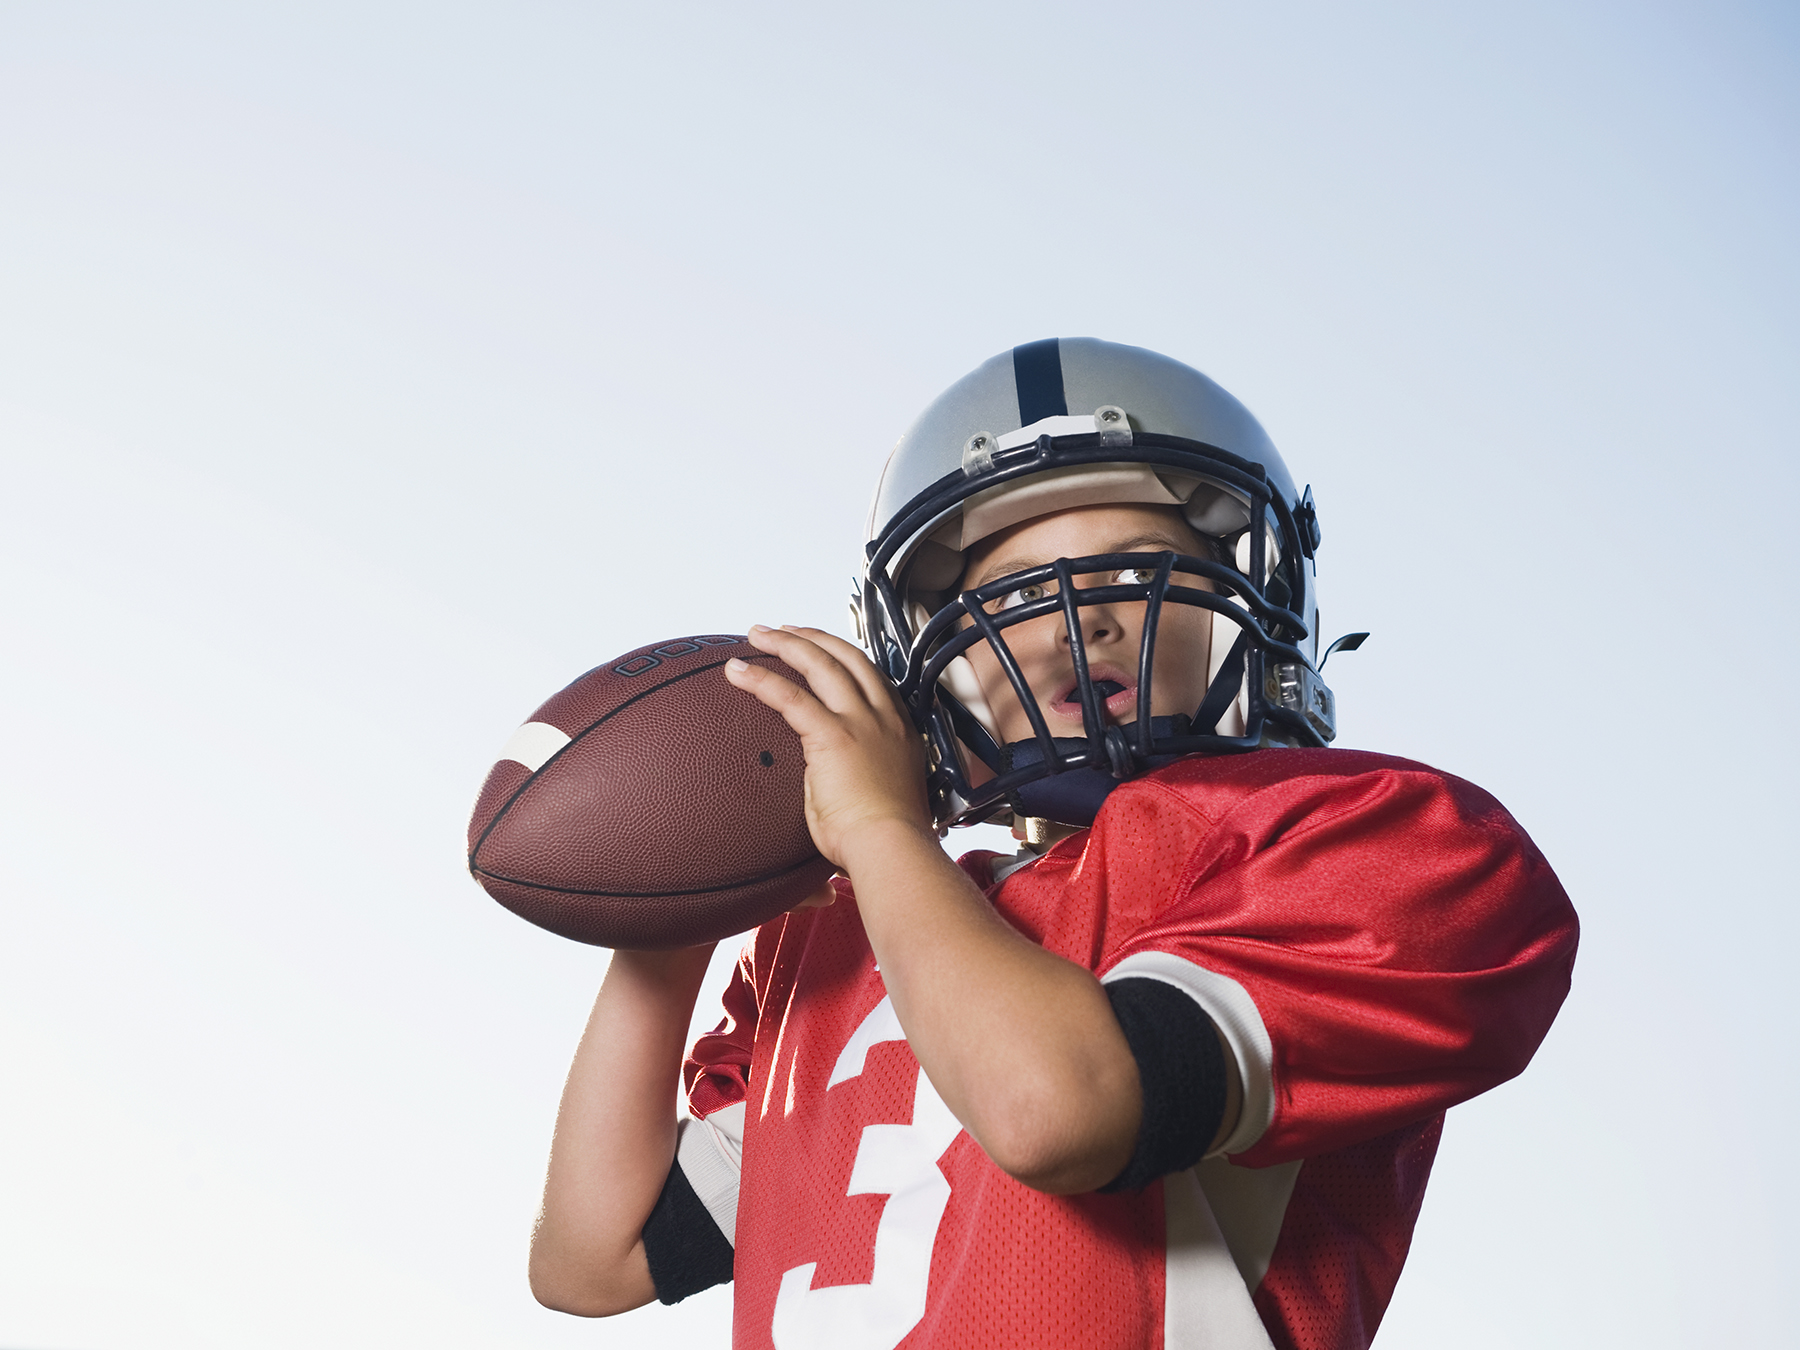 Boy playing football in uniform